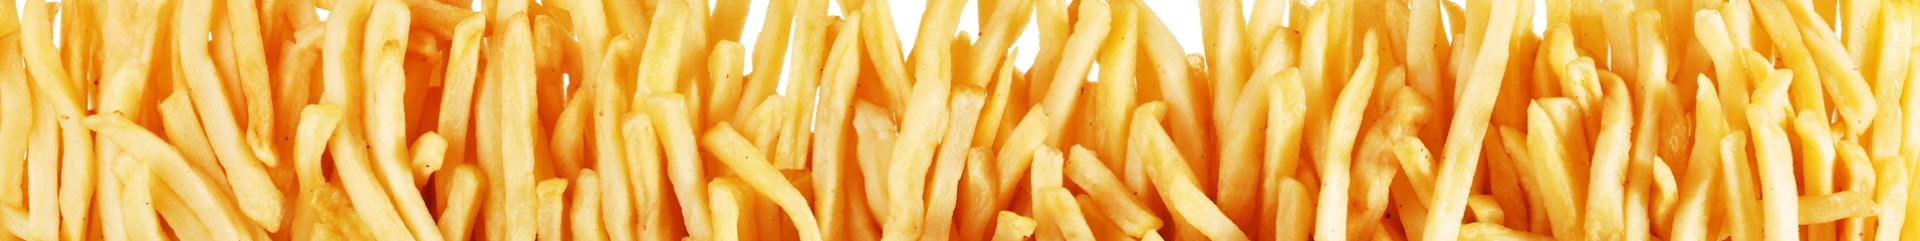 straight cut fries, Straight cut fries